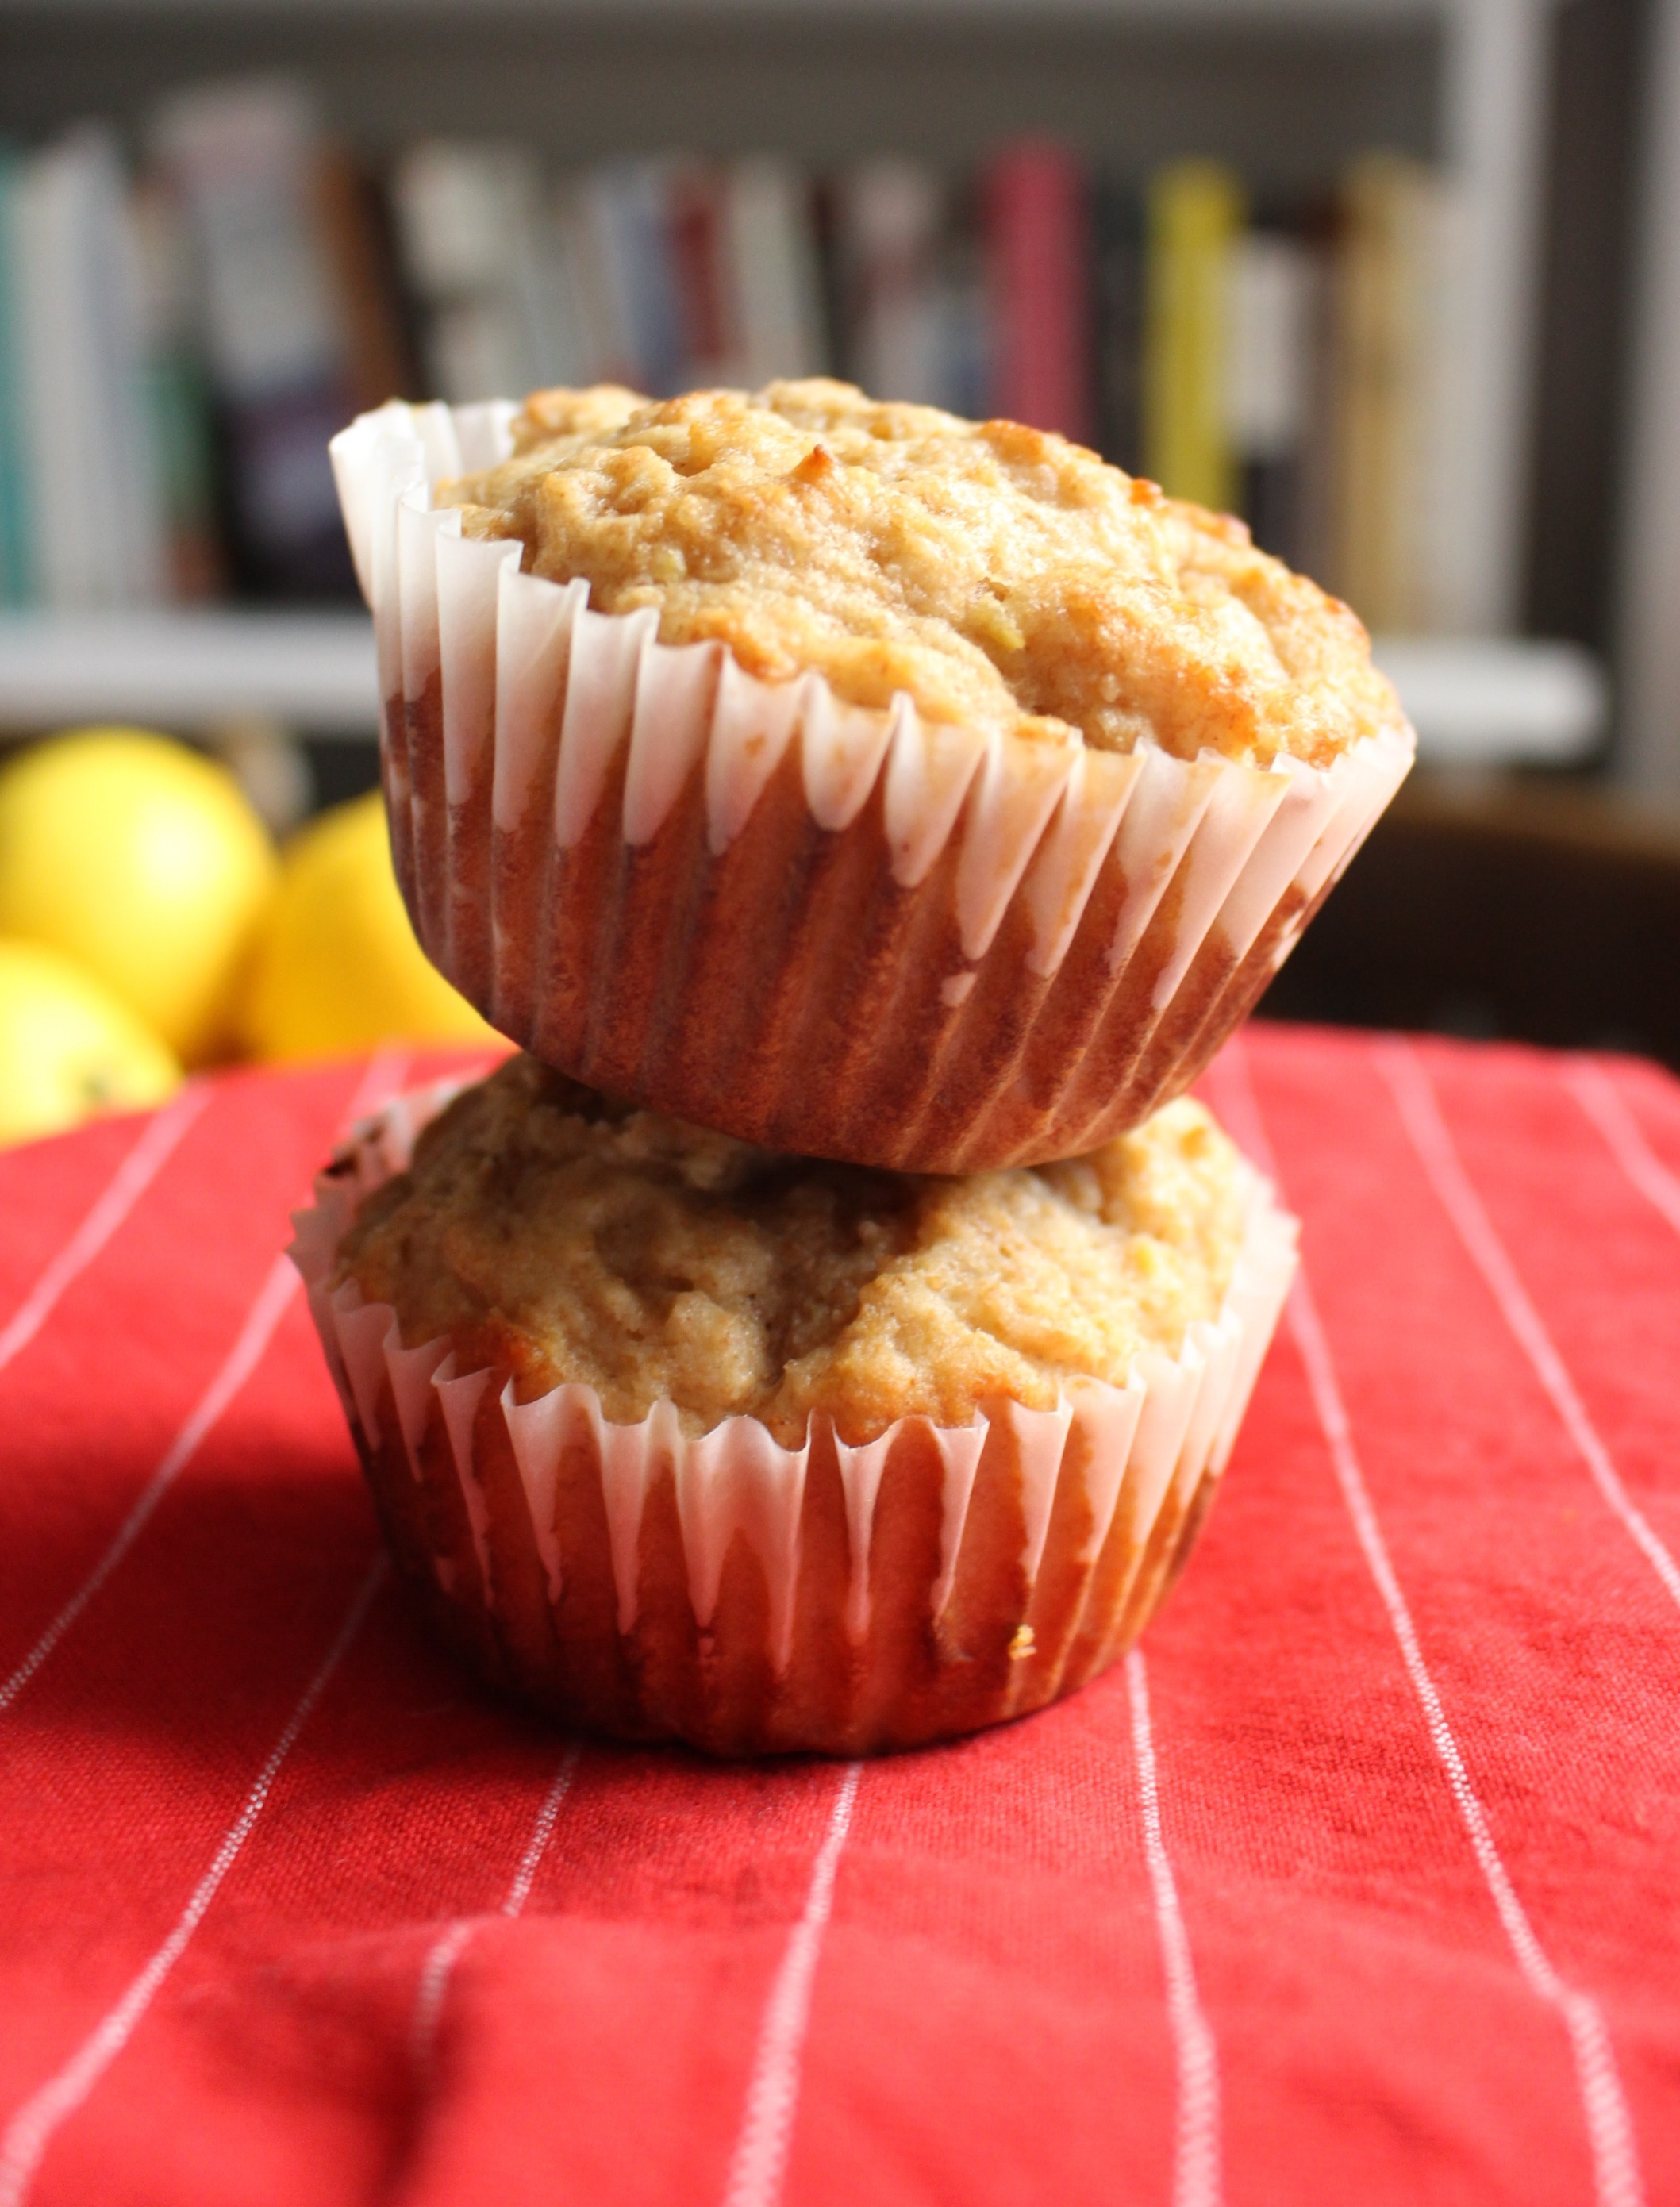 Honey, lemon, and ginger spelt muffins | Me & The Moose. These soothing muffins are healthier than the average morning treat because they contain no white flour and are sweetened with honey. #meandthemoose #muffinrecipes #healthymuffins #speltflourmuffins #lowerglutenrecipes #ancientgrainsrecipes #breakfast #breakfastrecipes #healthybaking #healthybakingrecipes